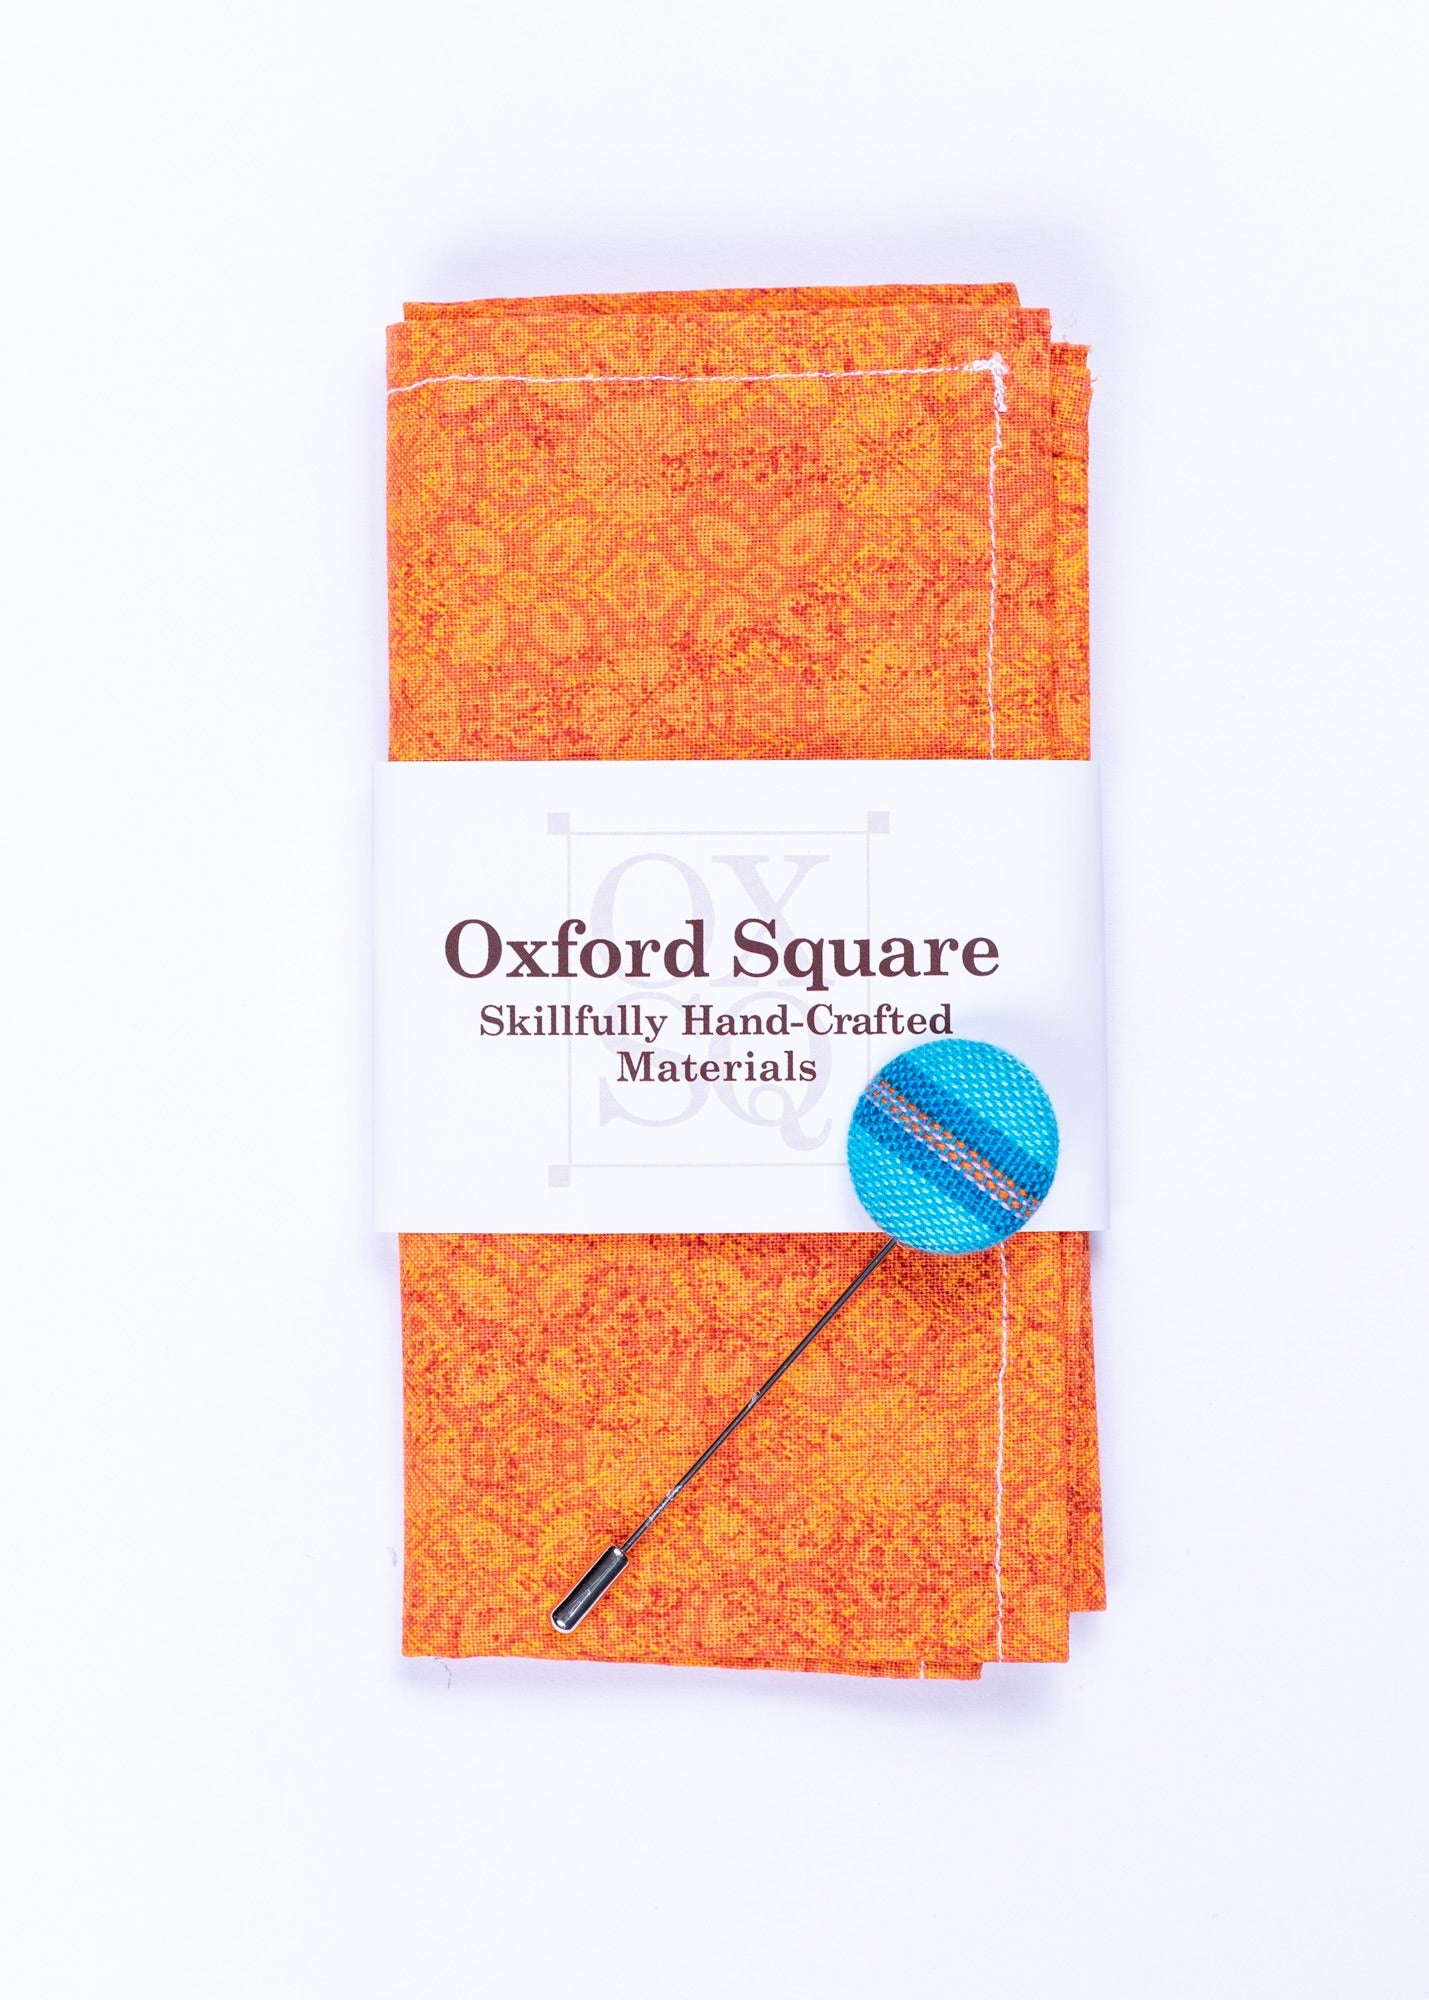 floral orange pocket square and lapel pin pack - Oxford Square